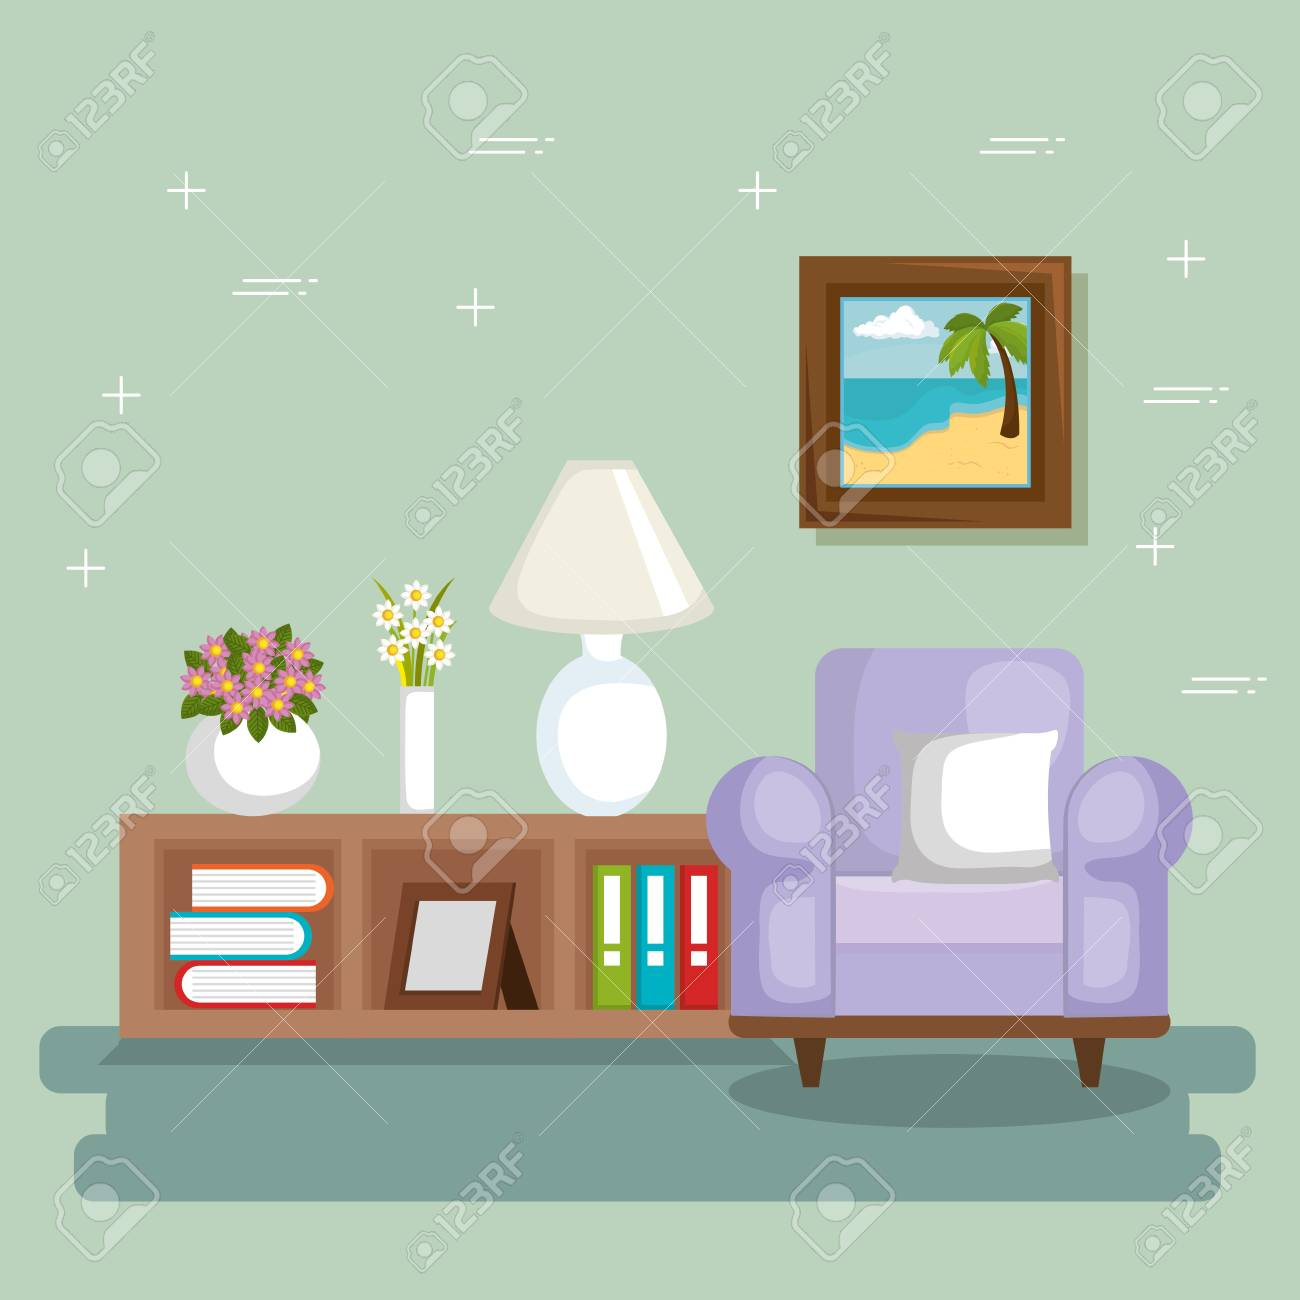 225 & elegant living room scene vector illustration design